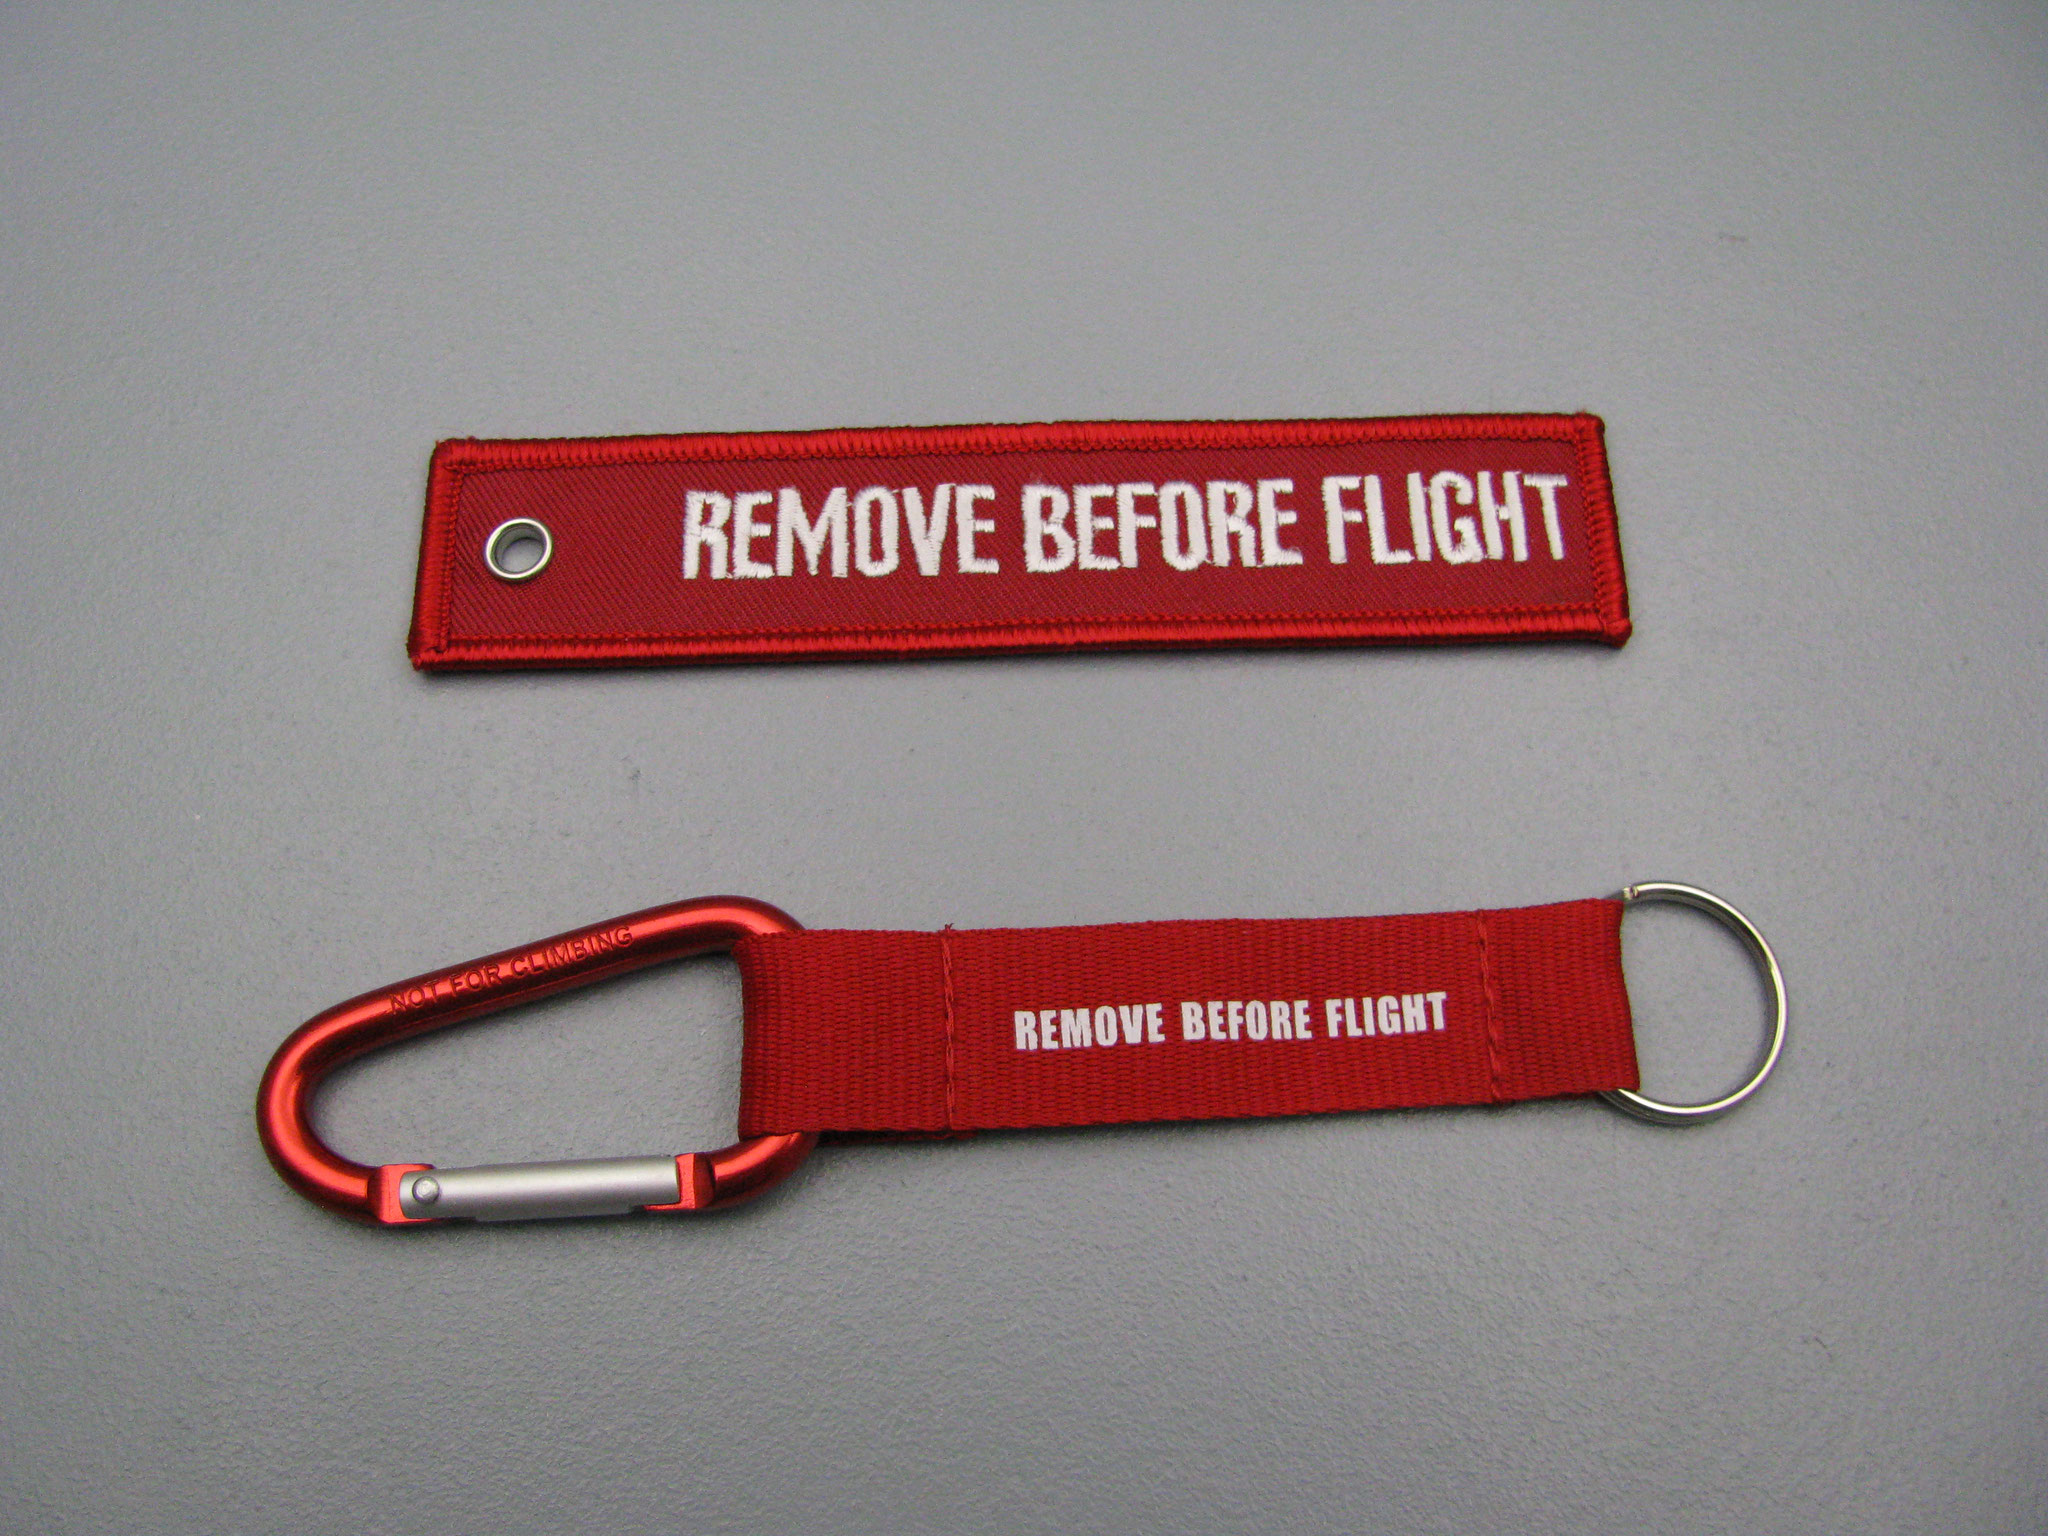 NEU: REMOVE BEFORE FLIGHT